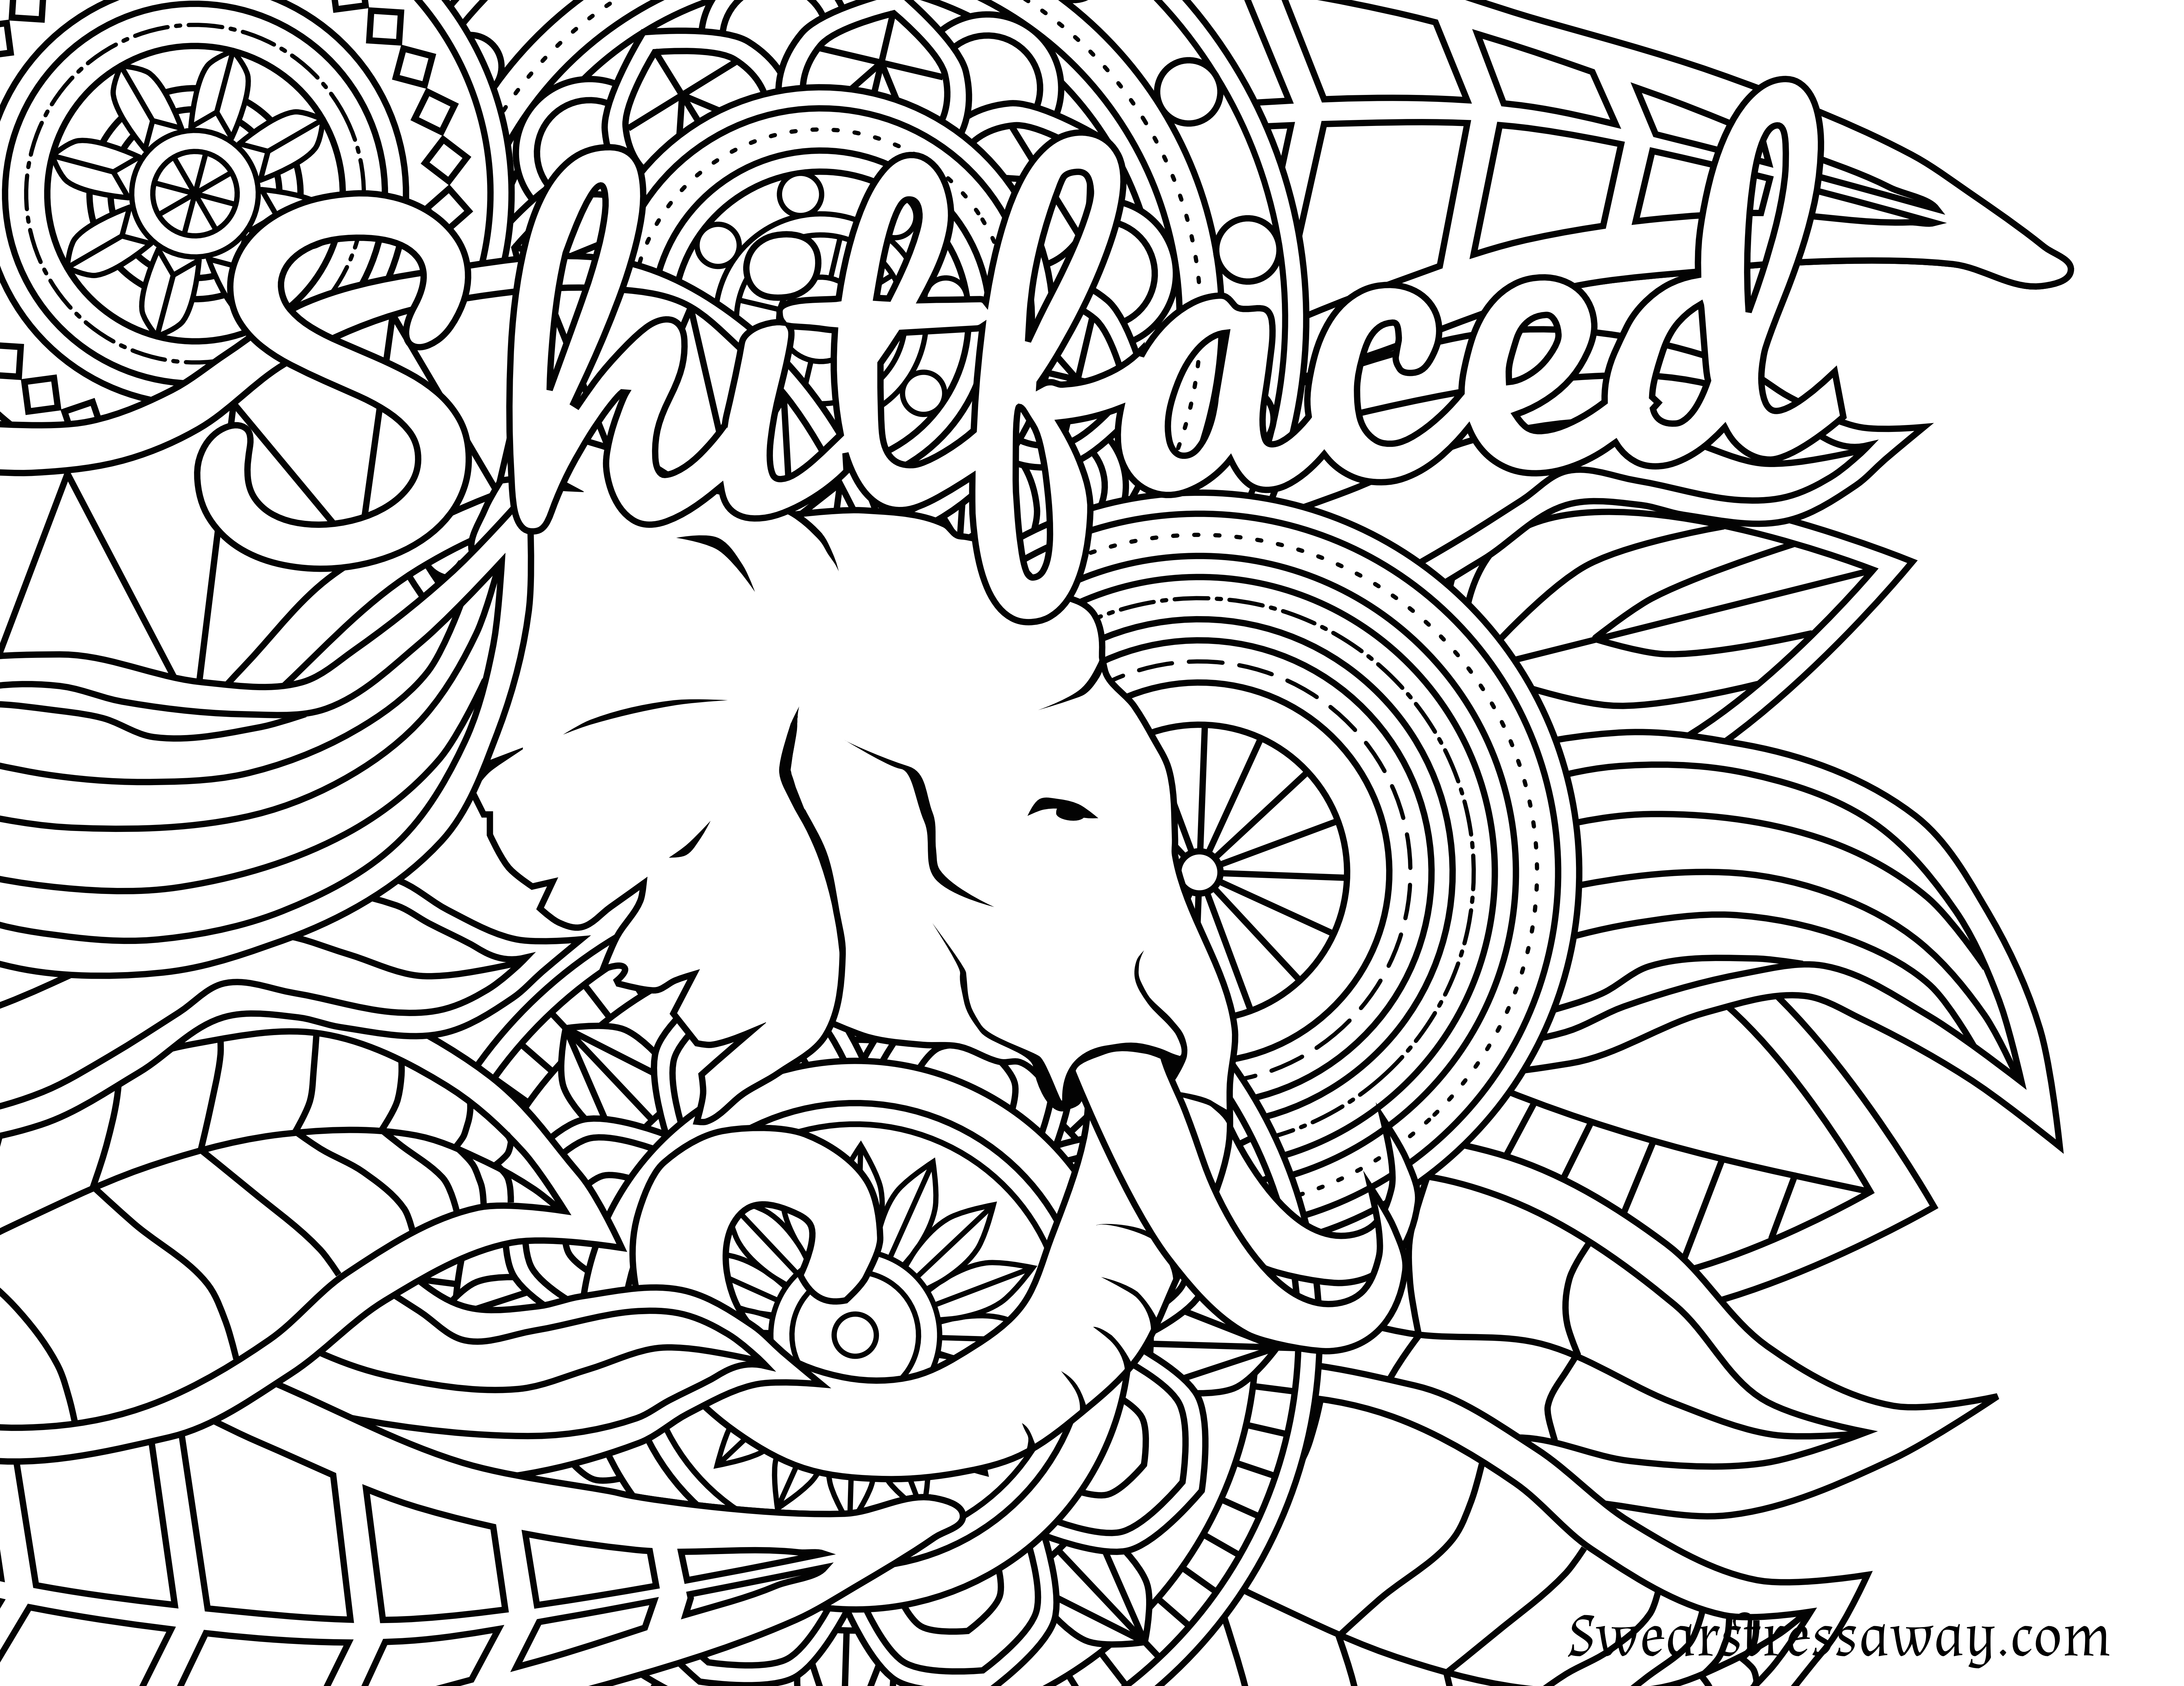 Bad word coloring pages - Free Printable Coloring Page Shitfaced Swear Word Coloring Page Sweary Coloring Page